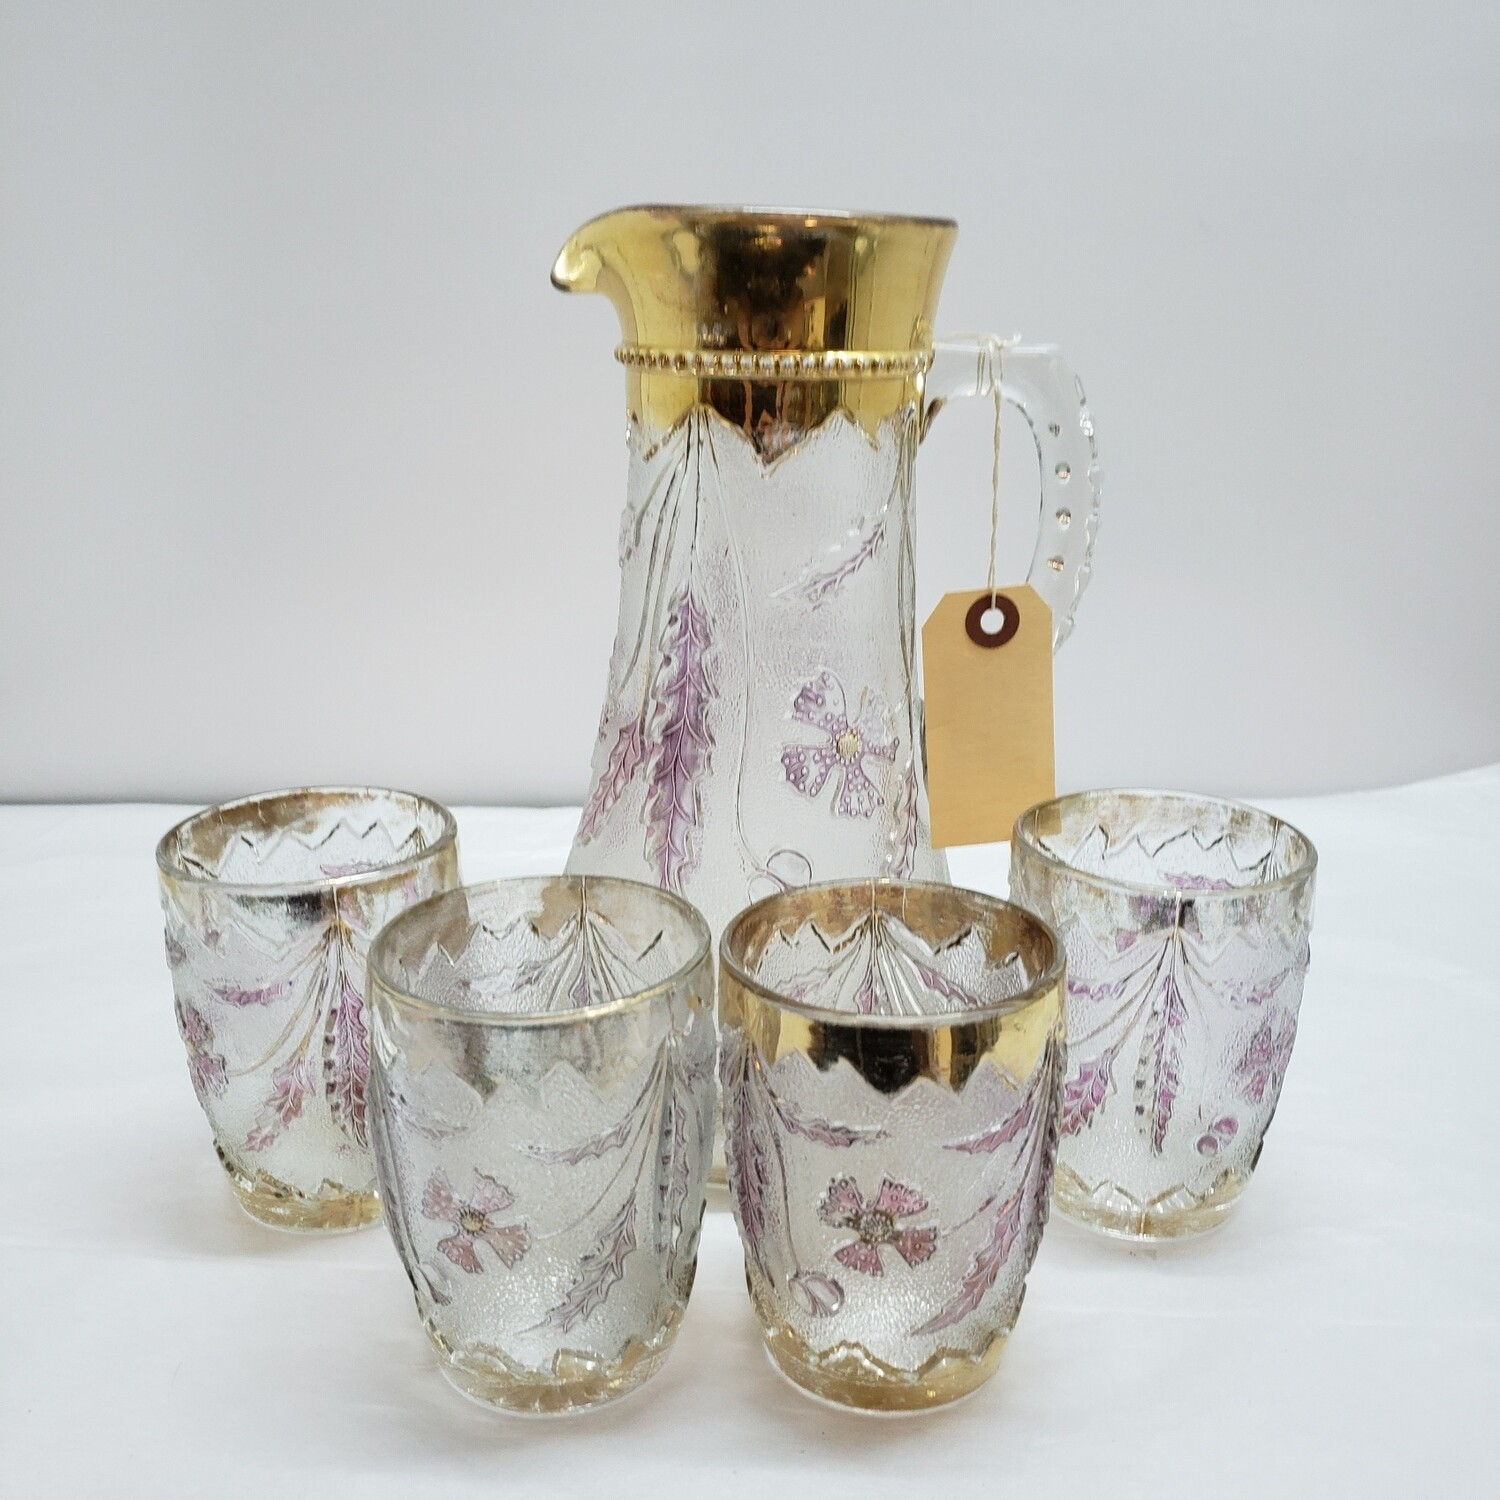 Delaware Patterned Glass pitcher and 4 glasses - Booth C62